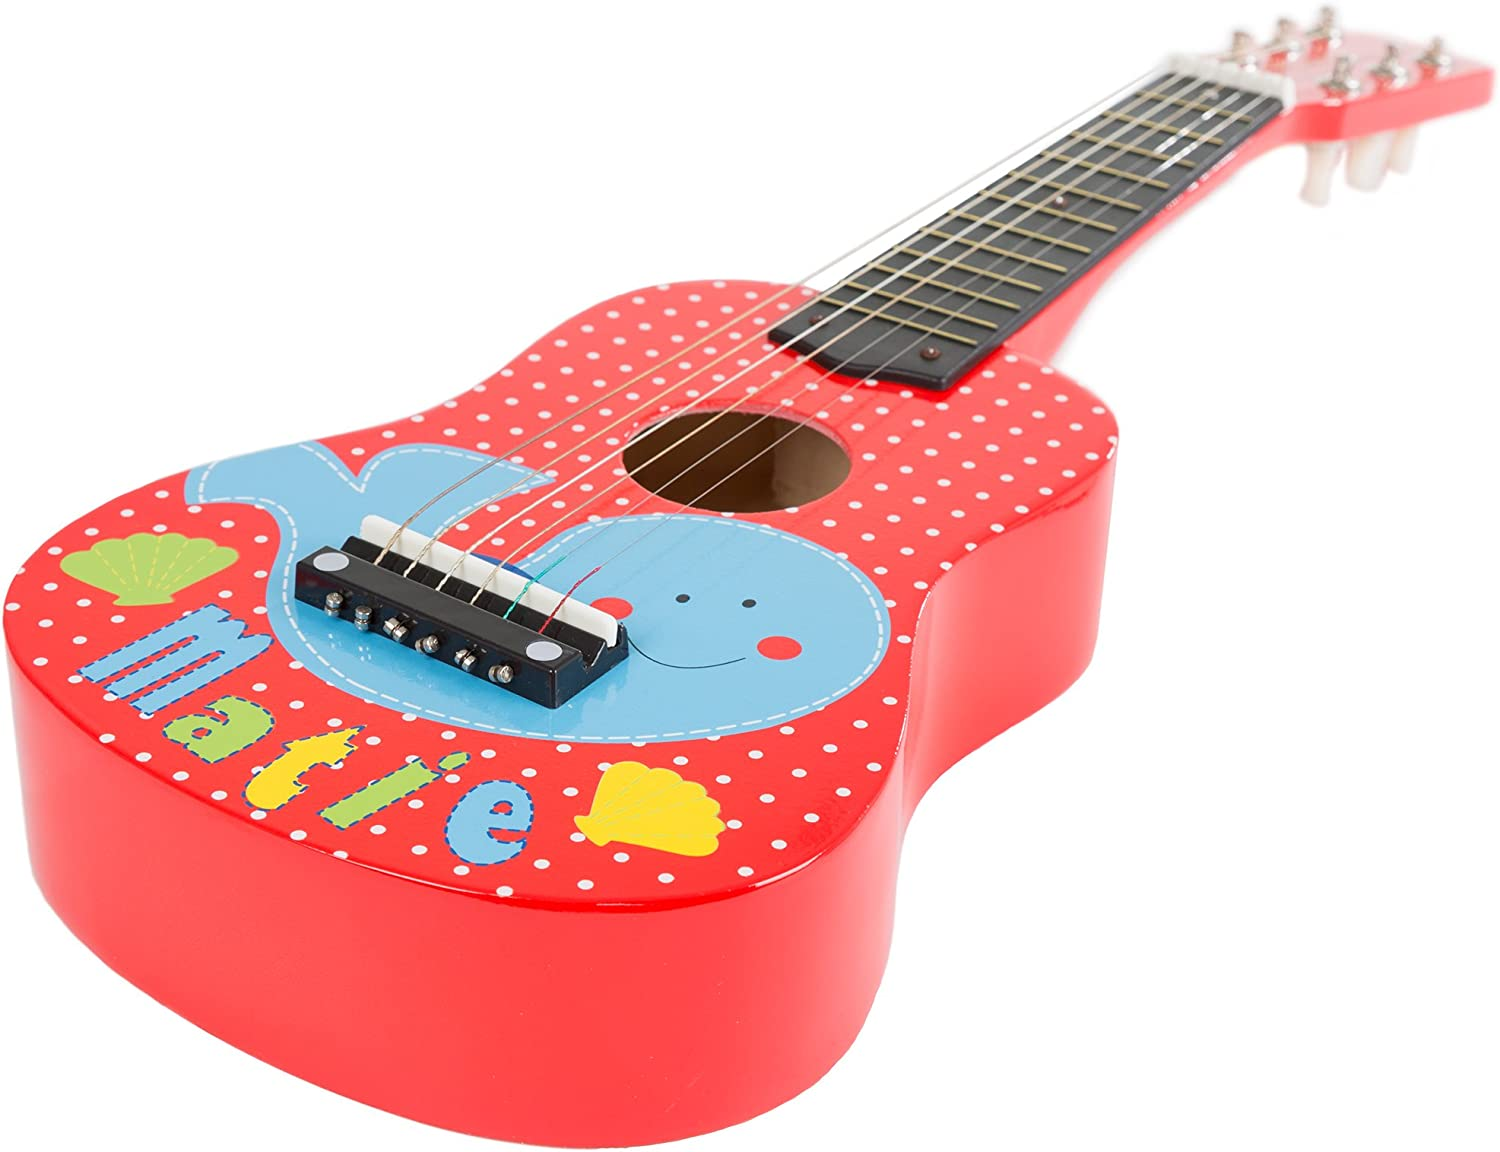 Toy Acoustic Guitar with 6 Tunable Strings and Real Musical Sounds by Hey  Play